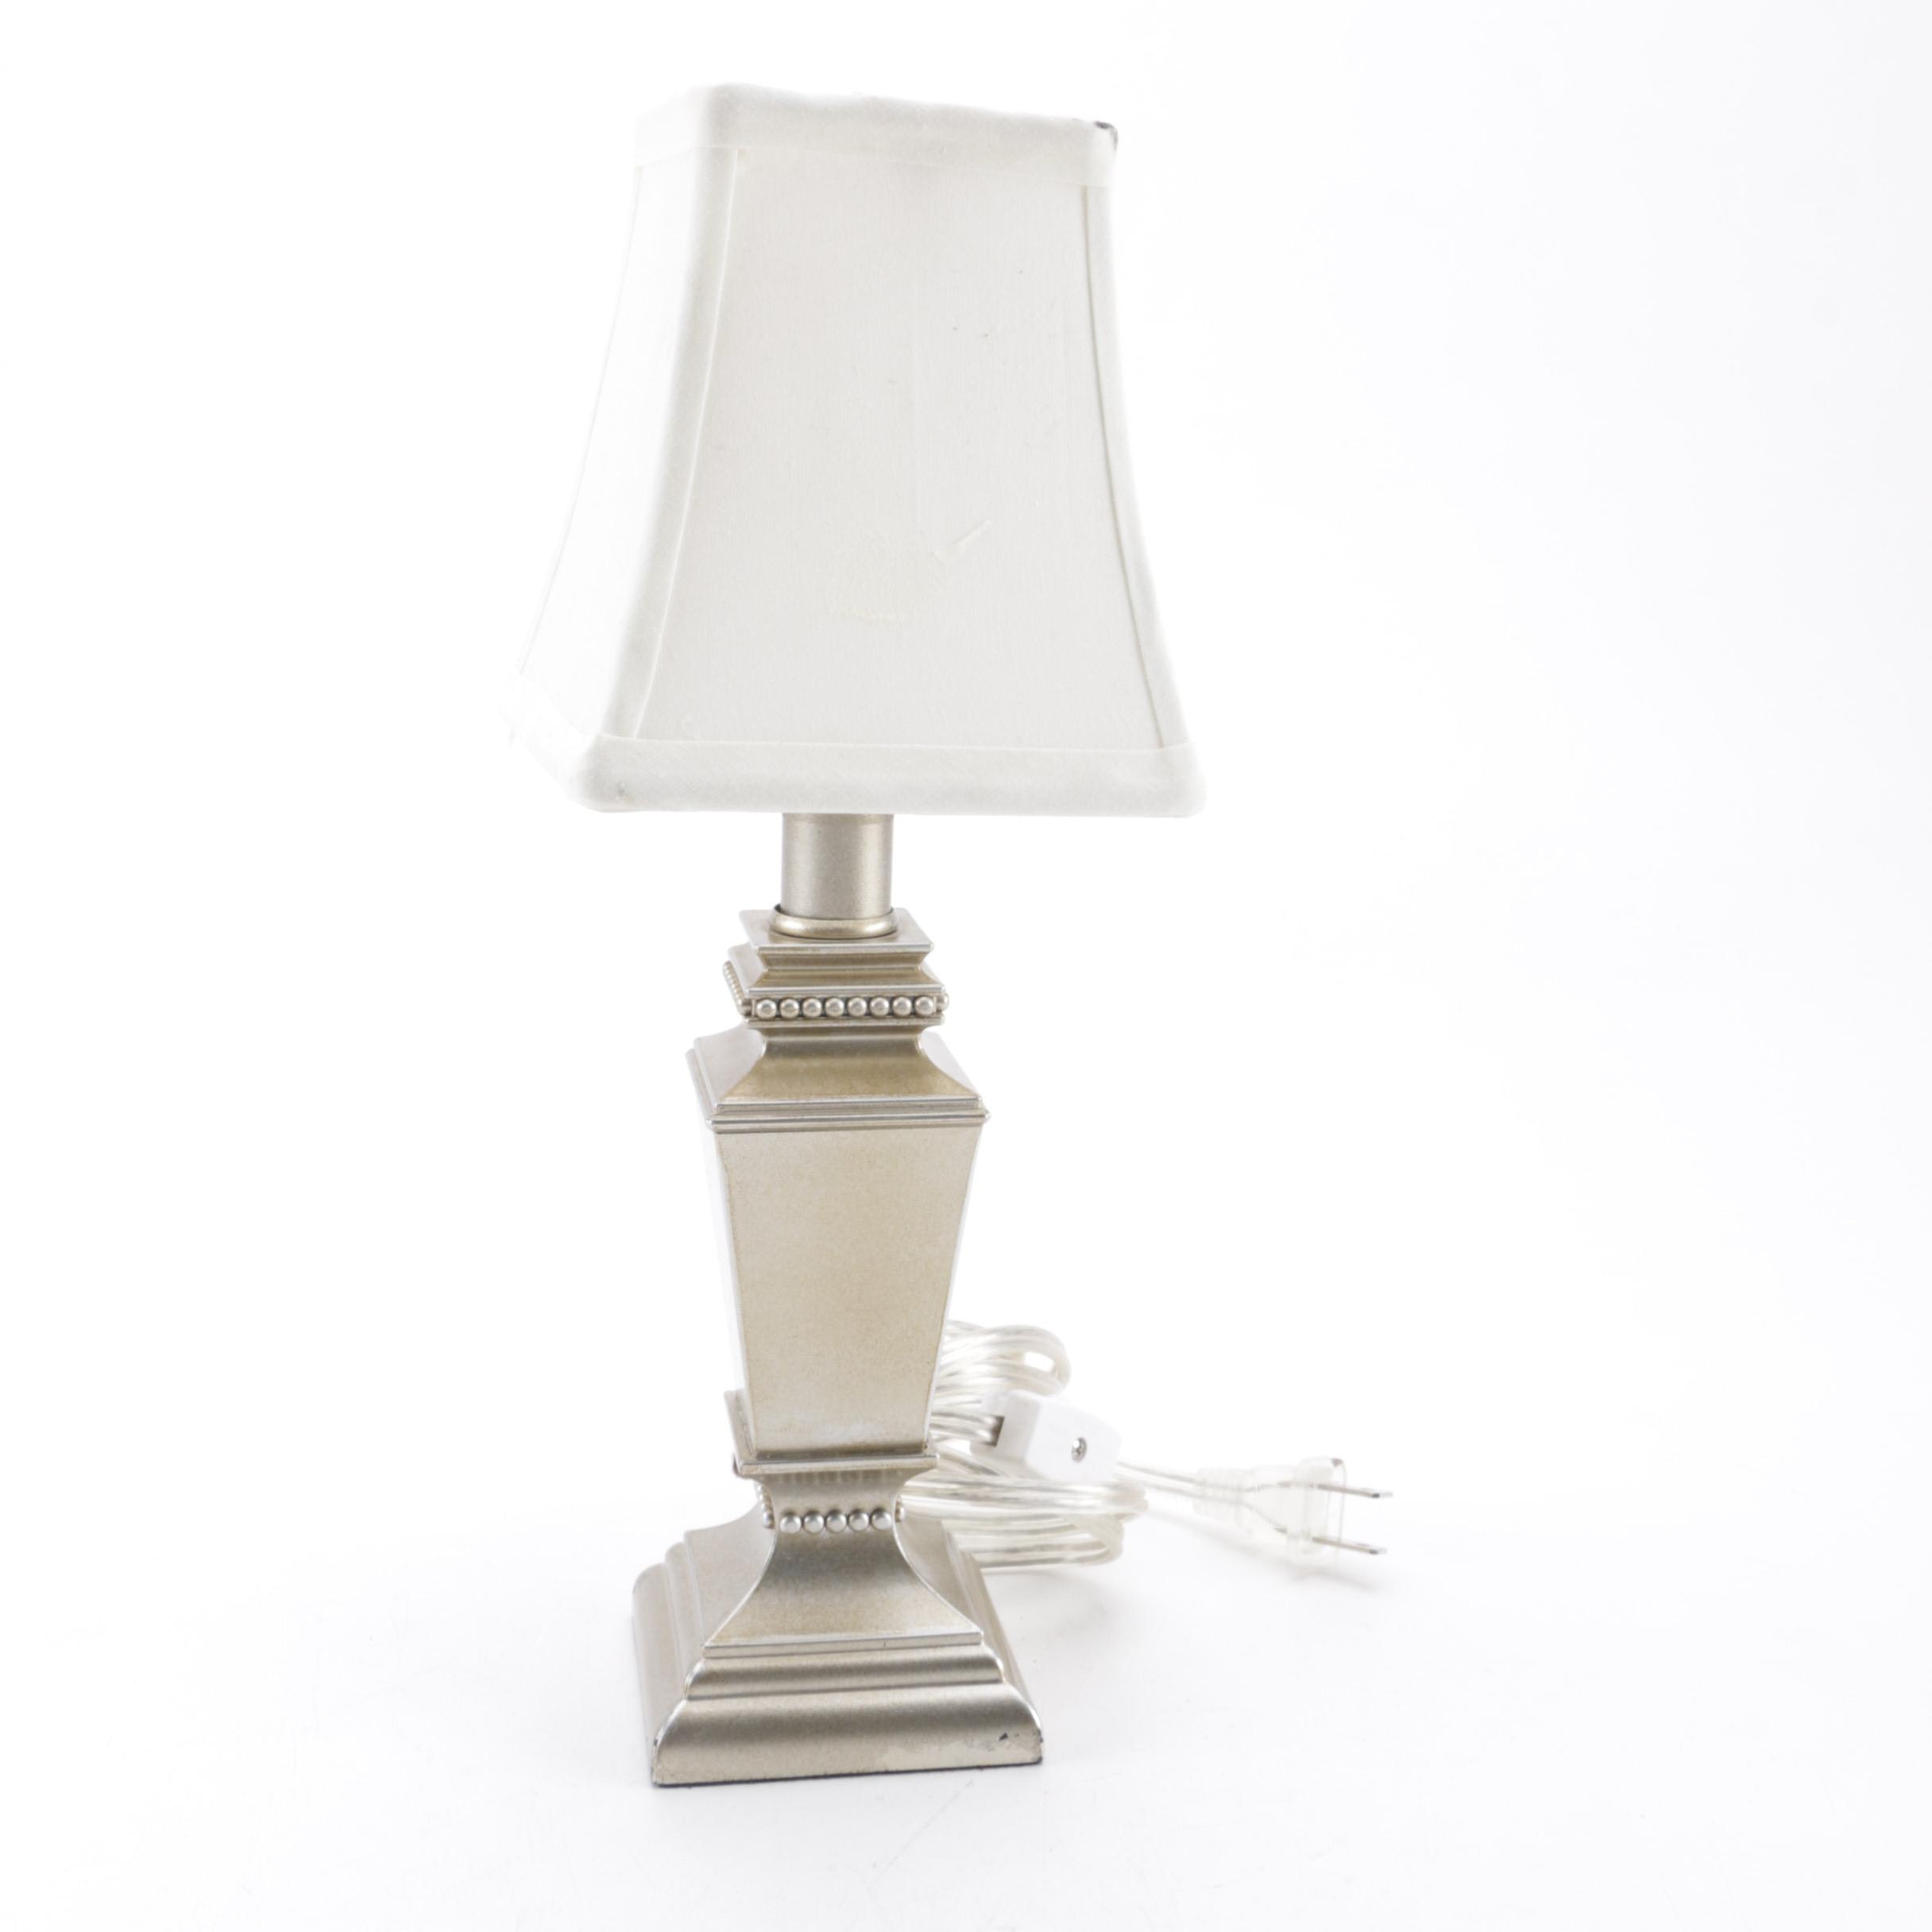 Miniature Table Lamp and Shade